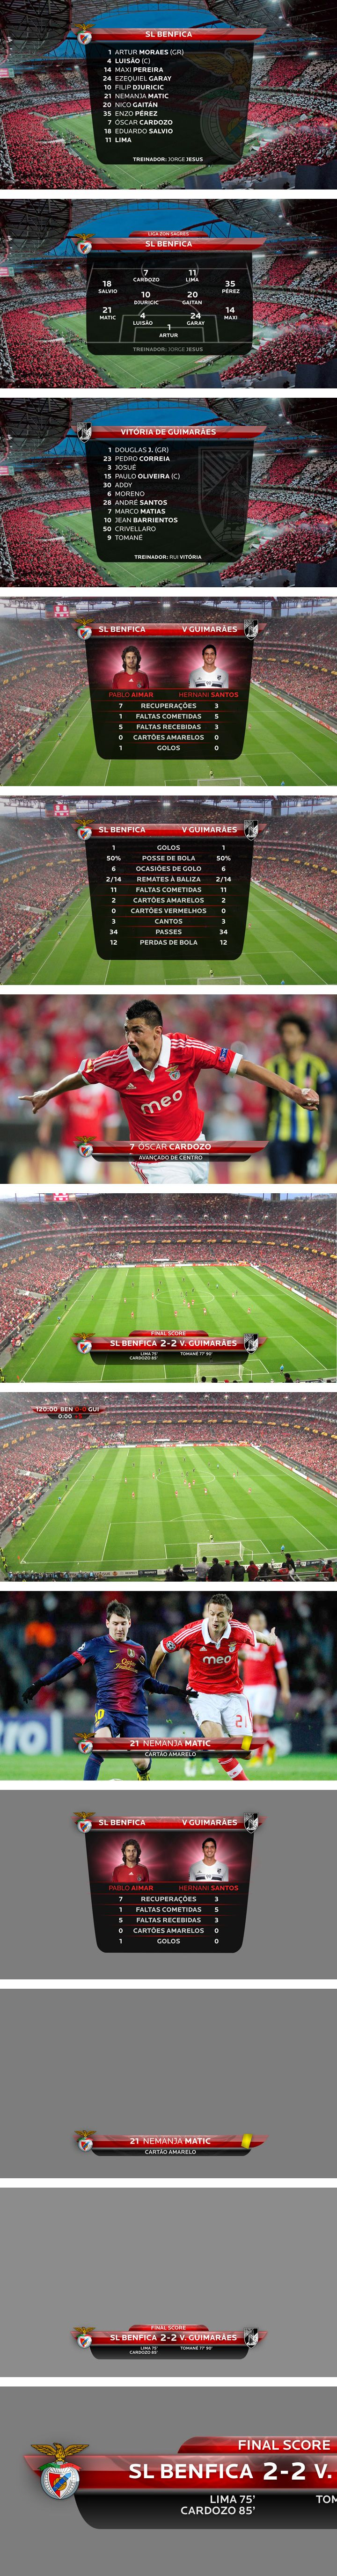 Benfica TV - On-air design - Paulo Garcia